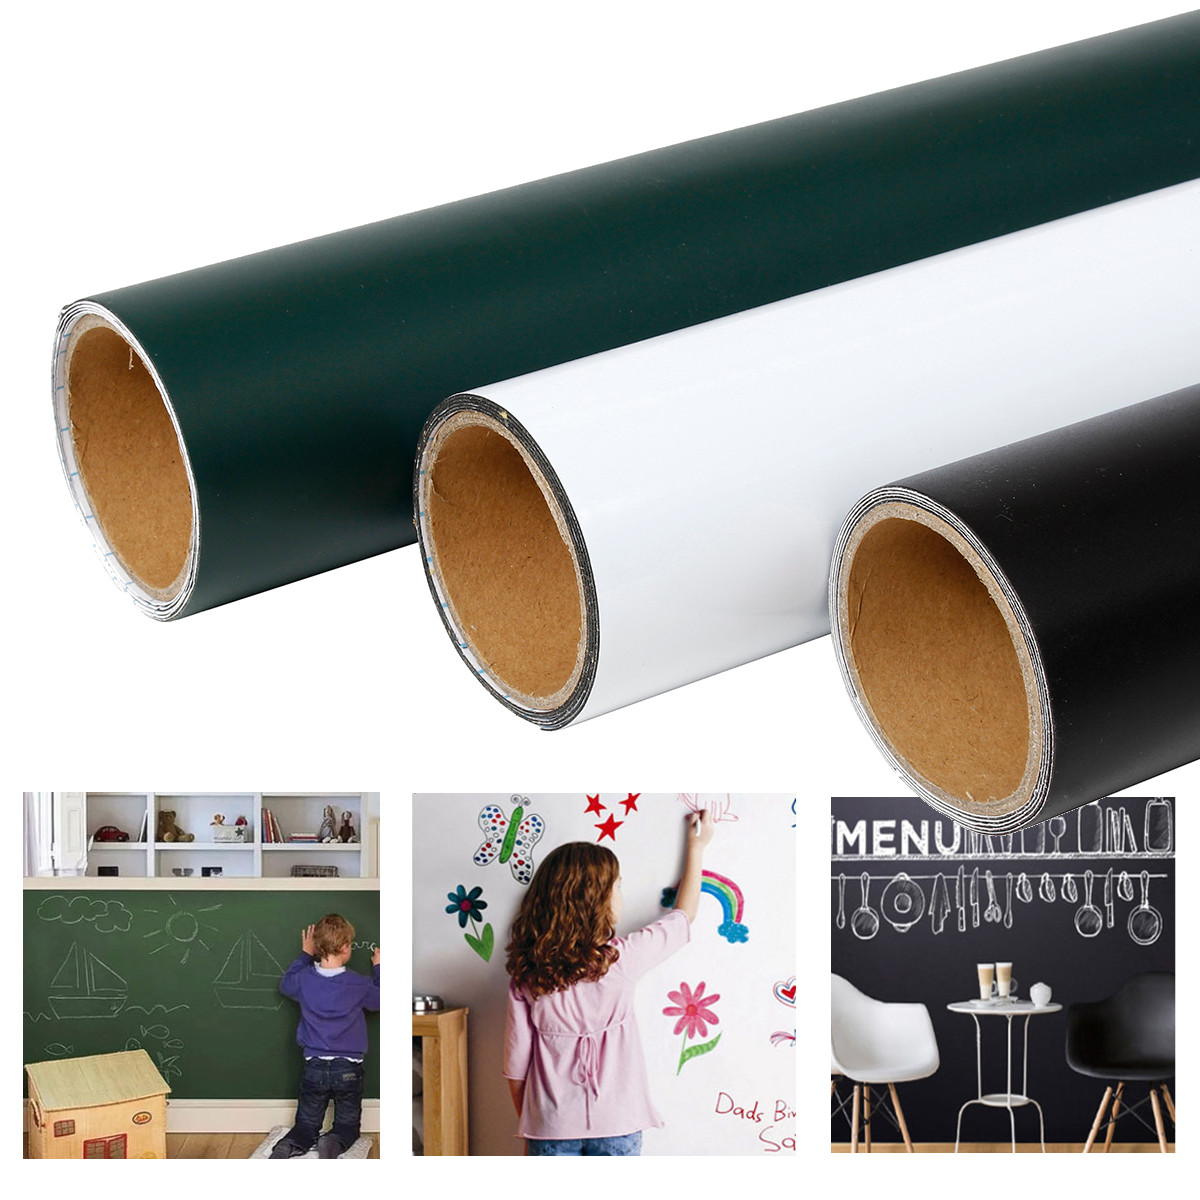 Soft Magnetic Self-adhesive Blackboard Stickers Removable Children Graffiti Wall Stickers Office Presentation Boards Whiteboard